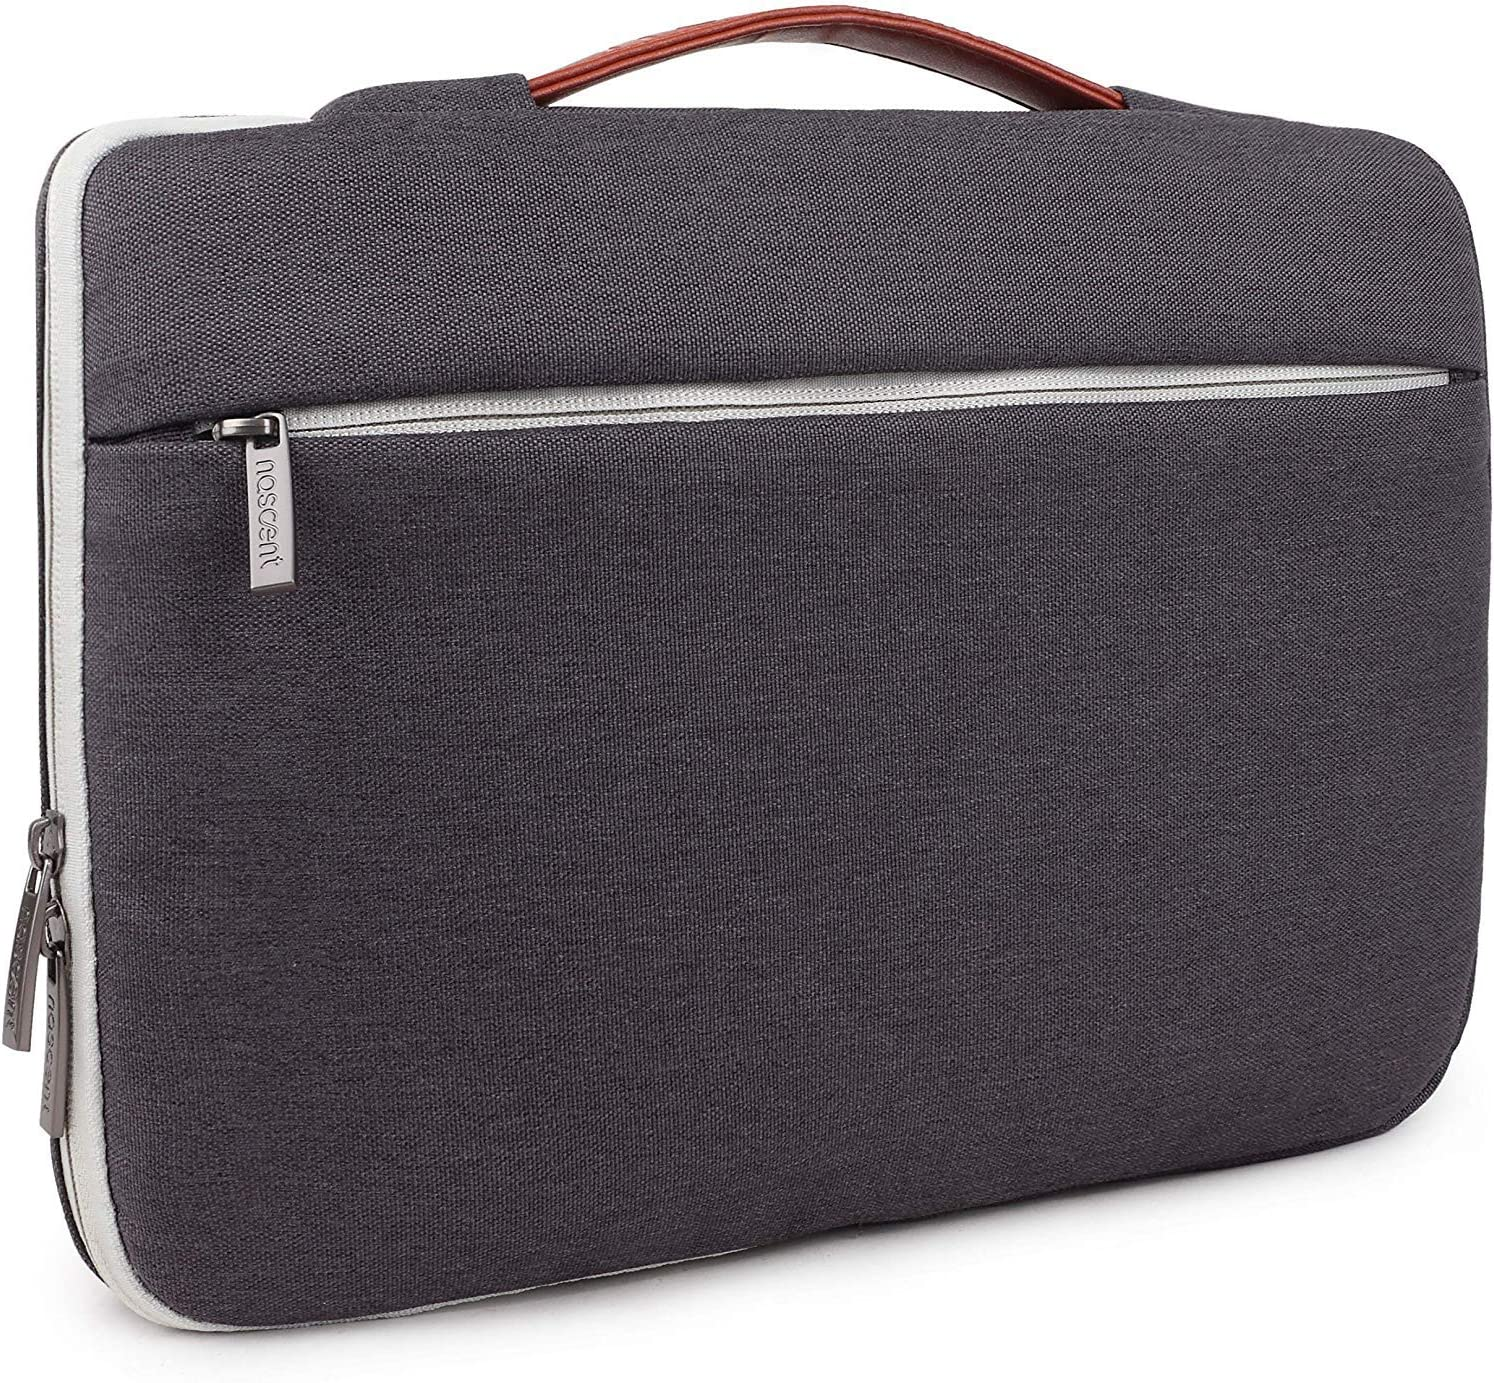 """Nascent 360° Protective 13-13.3 inch Laptop Sleeve Case Compatible with 13"""" MacBook Pro Retina 2012-2019, 12.9 Inch iPad Pro, Dell HP ASUS Acer Chromebook Bag (Charcoal Gray)"""